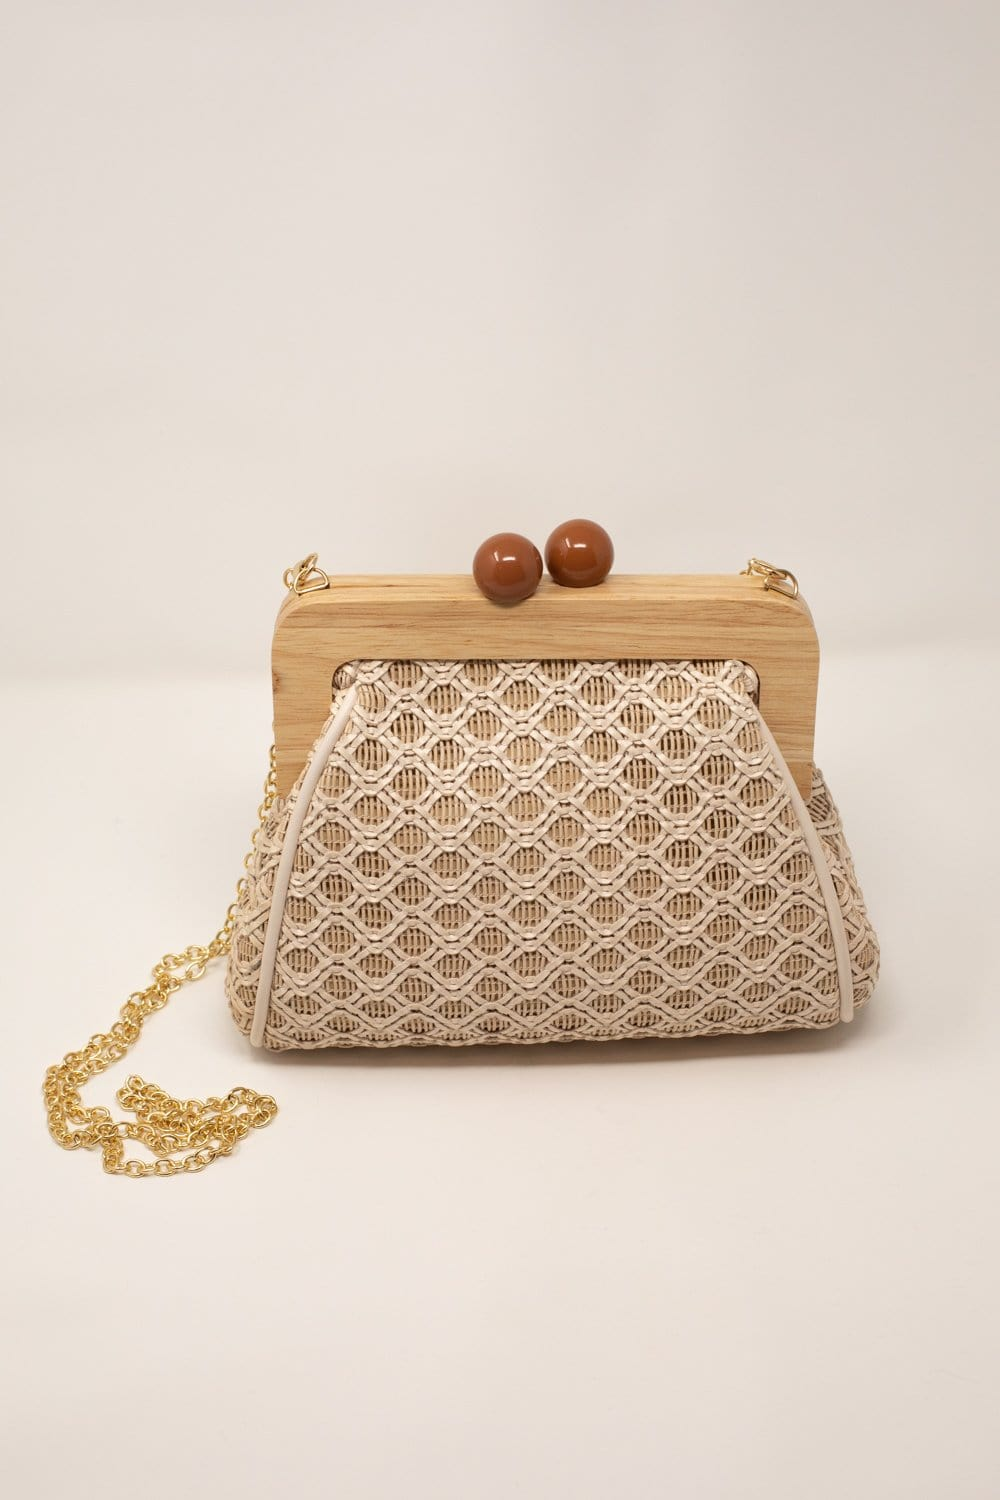 Brenna Wooden Wicker Bag